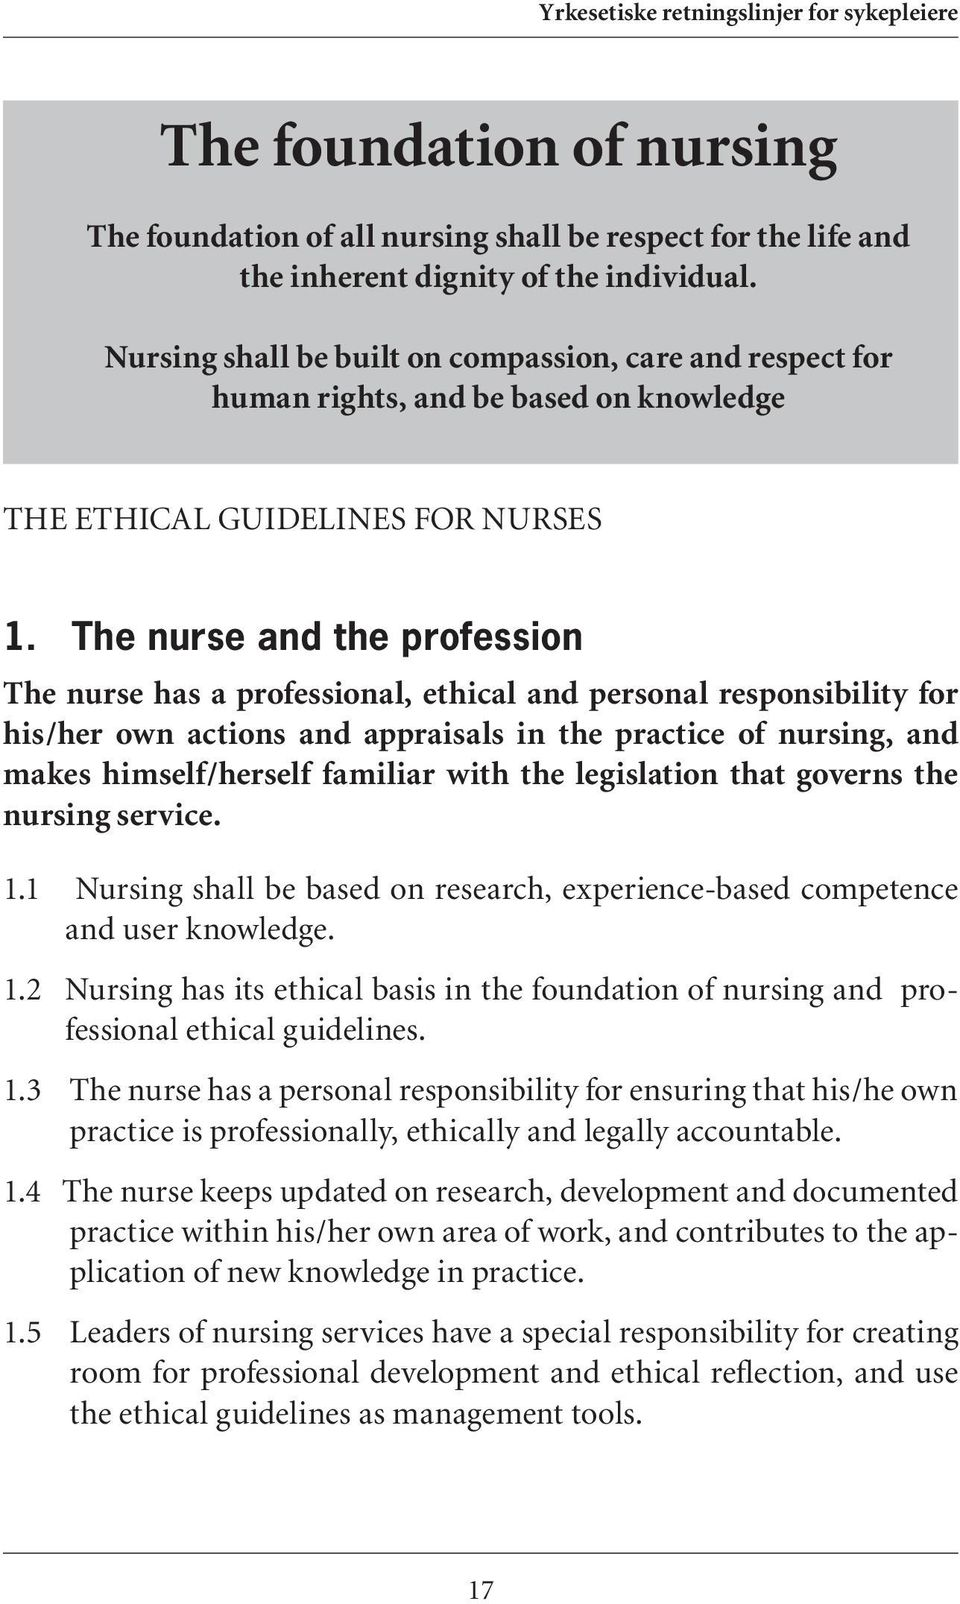 The nurse and the profession The nurse has a professional, ethical and personal responsibility for his/her own actions and appraisals in the practice of nursing, and makes himself/herself familiar